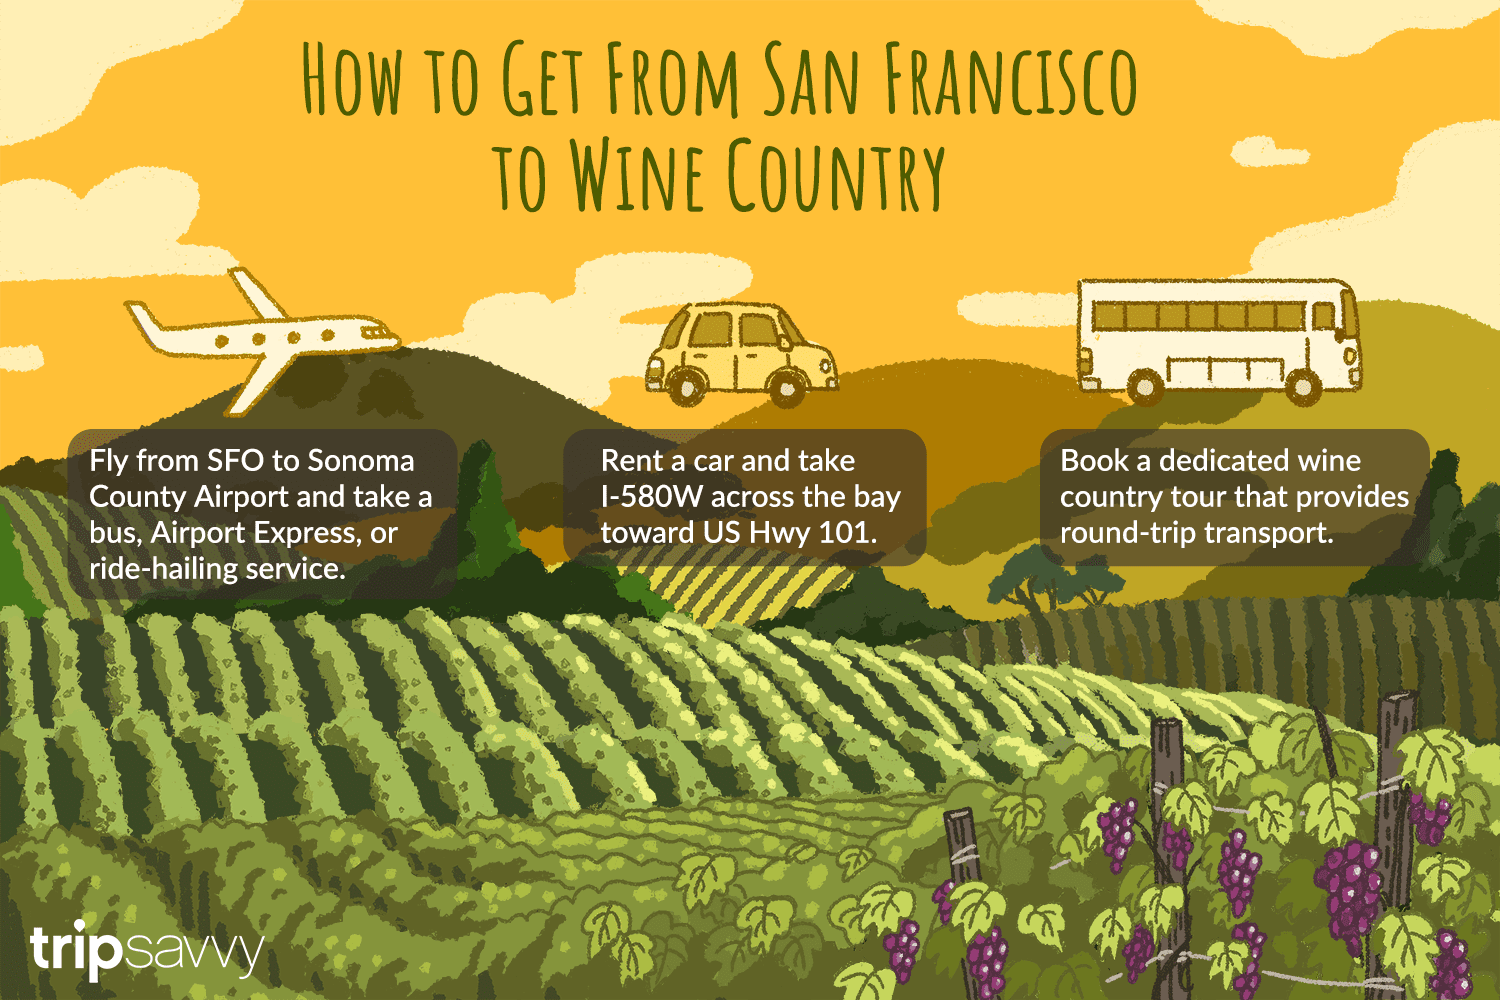 how to get from san francisco to wine country